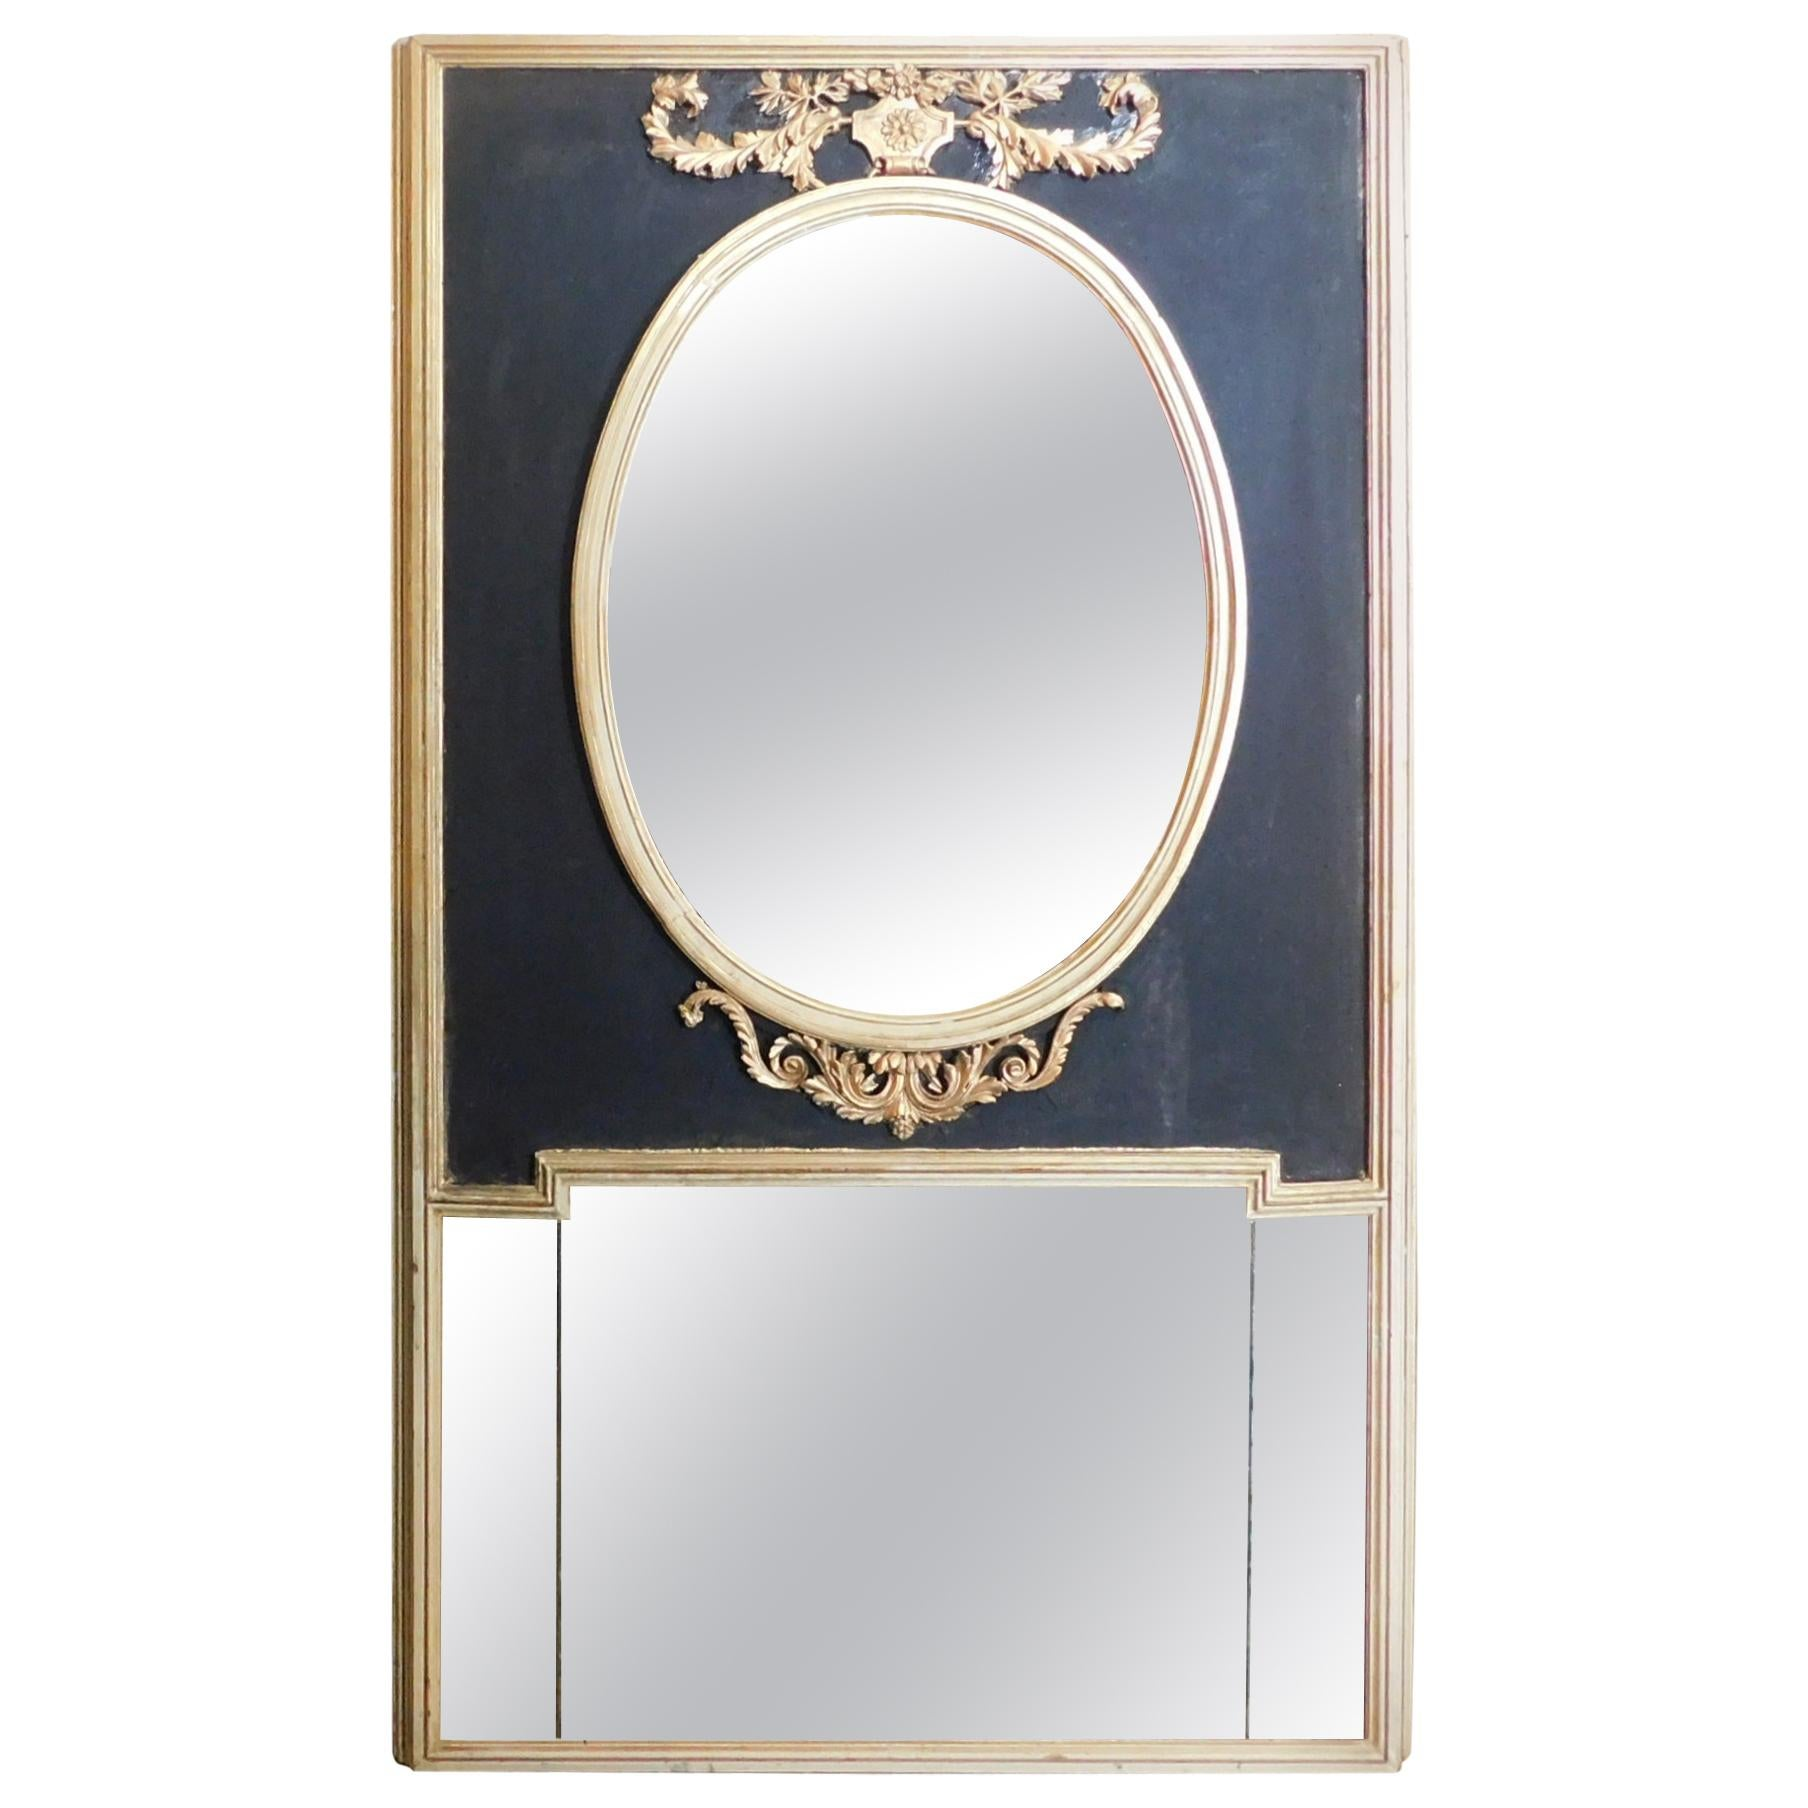 Antique Carved Giltwood Mirror Black Laquered, 1700, Italy